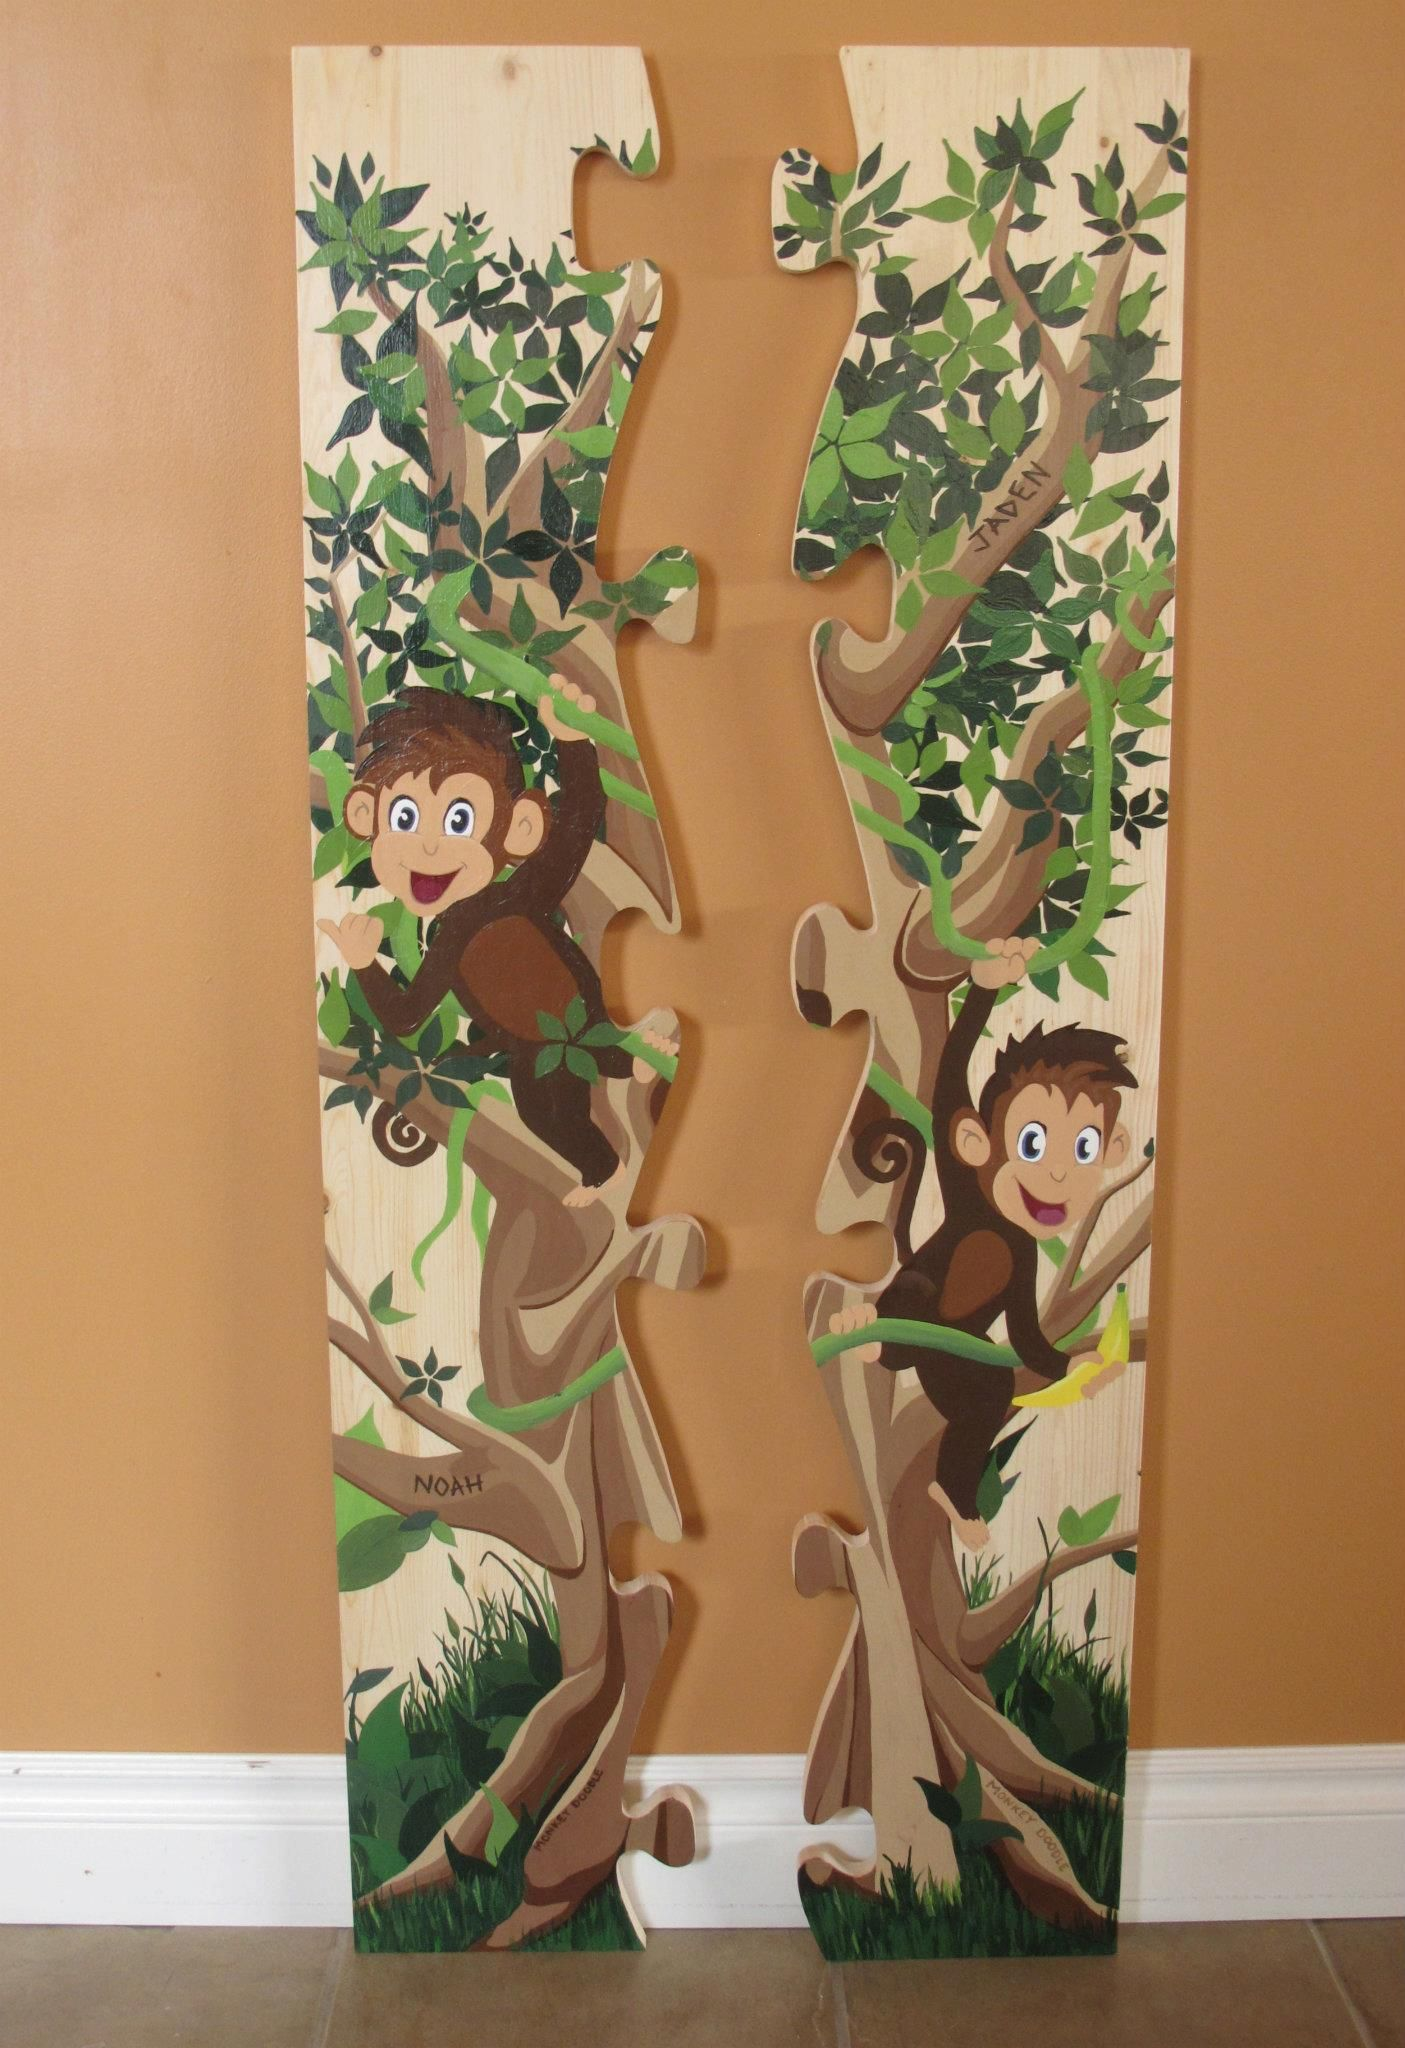 Hand painted custom personalized wooden growth chart by daisy may hand painted custom personalized wooden growth chart by daisy may decor monkey nvjuhfo Image collections